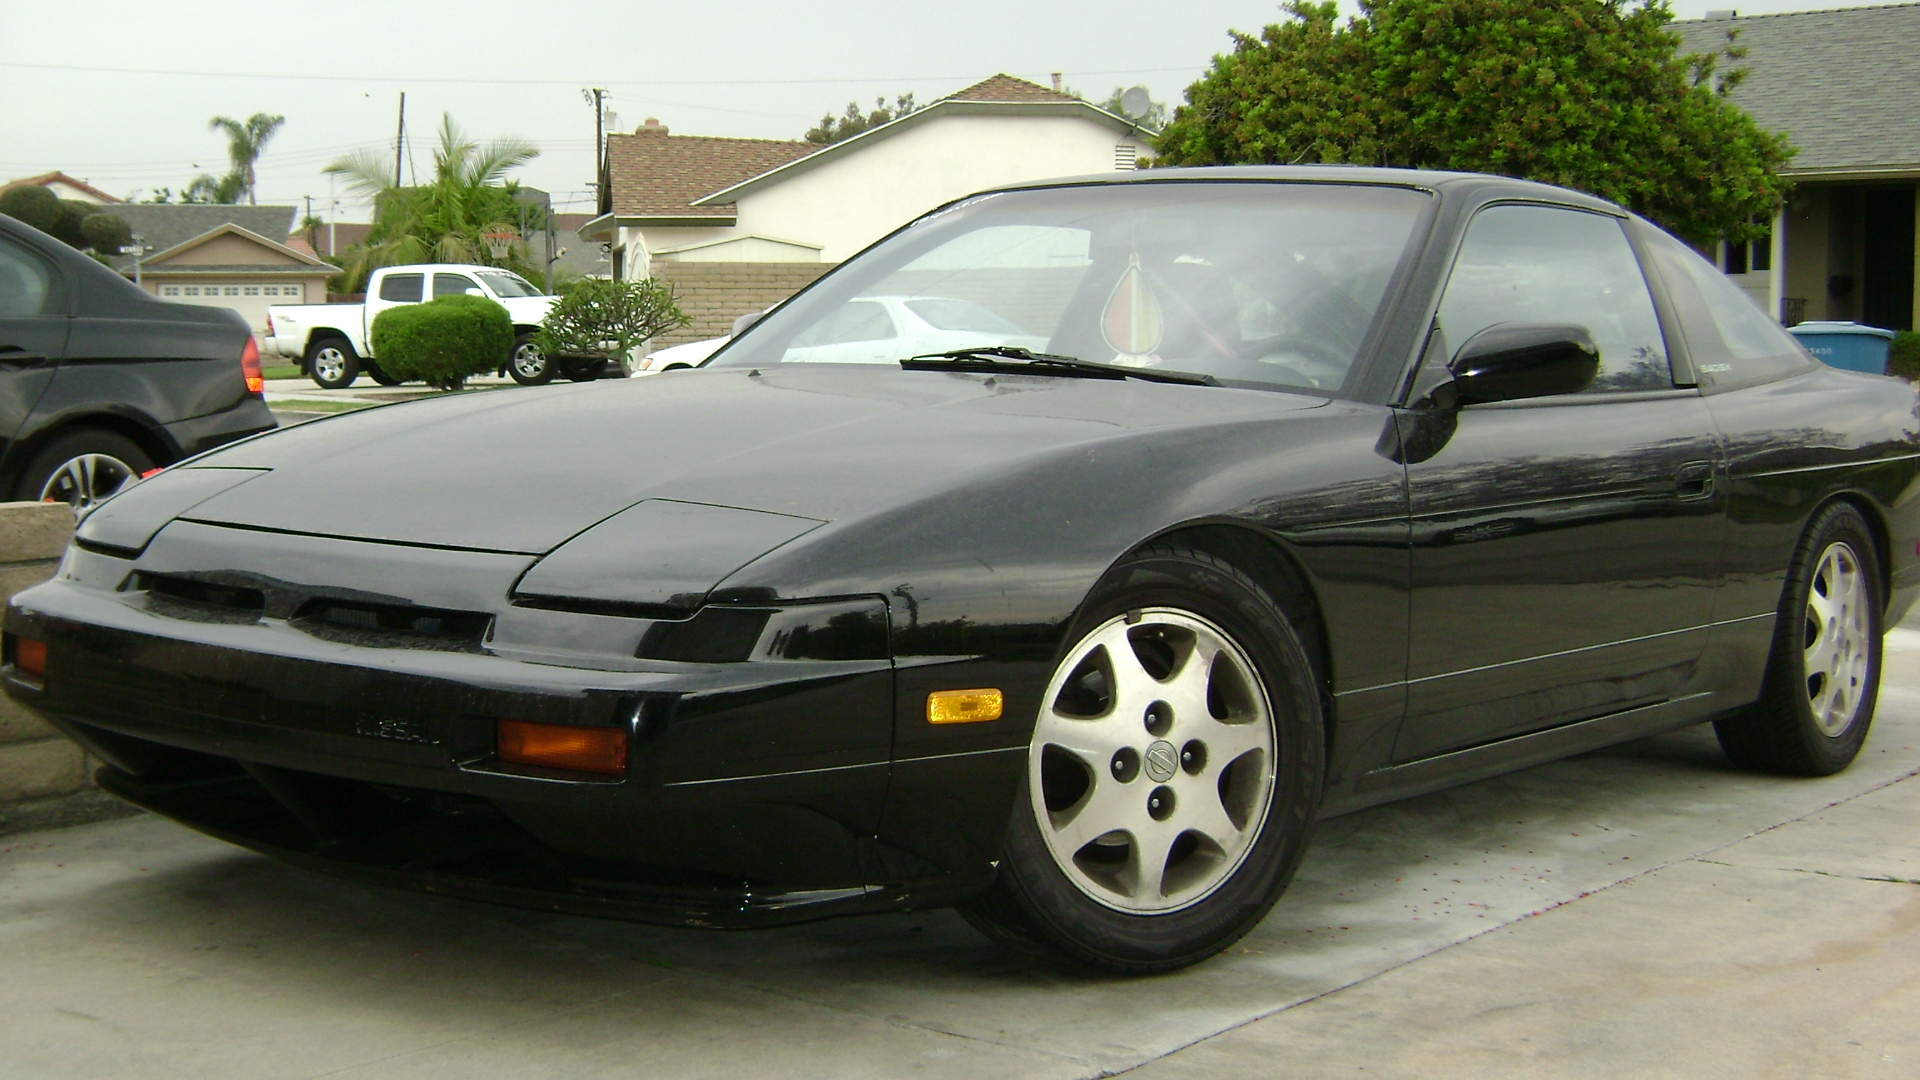 djmumbles 39 s 1990 nissan 240sx in huntington beach ca. Black Bedroom Furniture Sets. Home Design Ideas